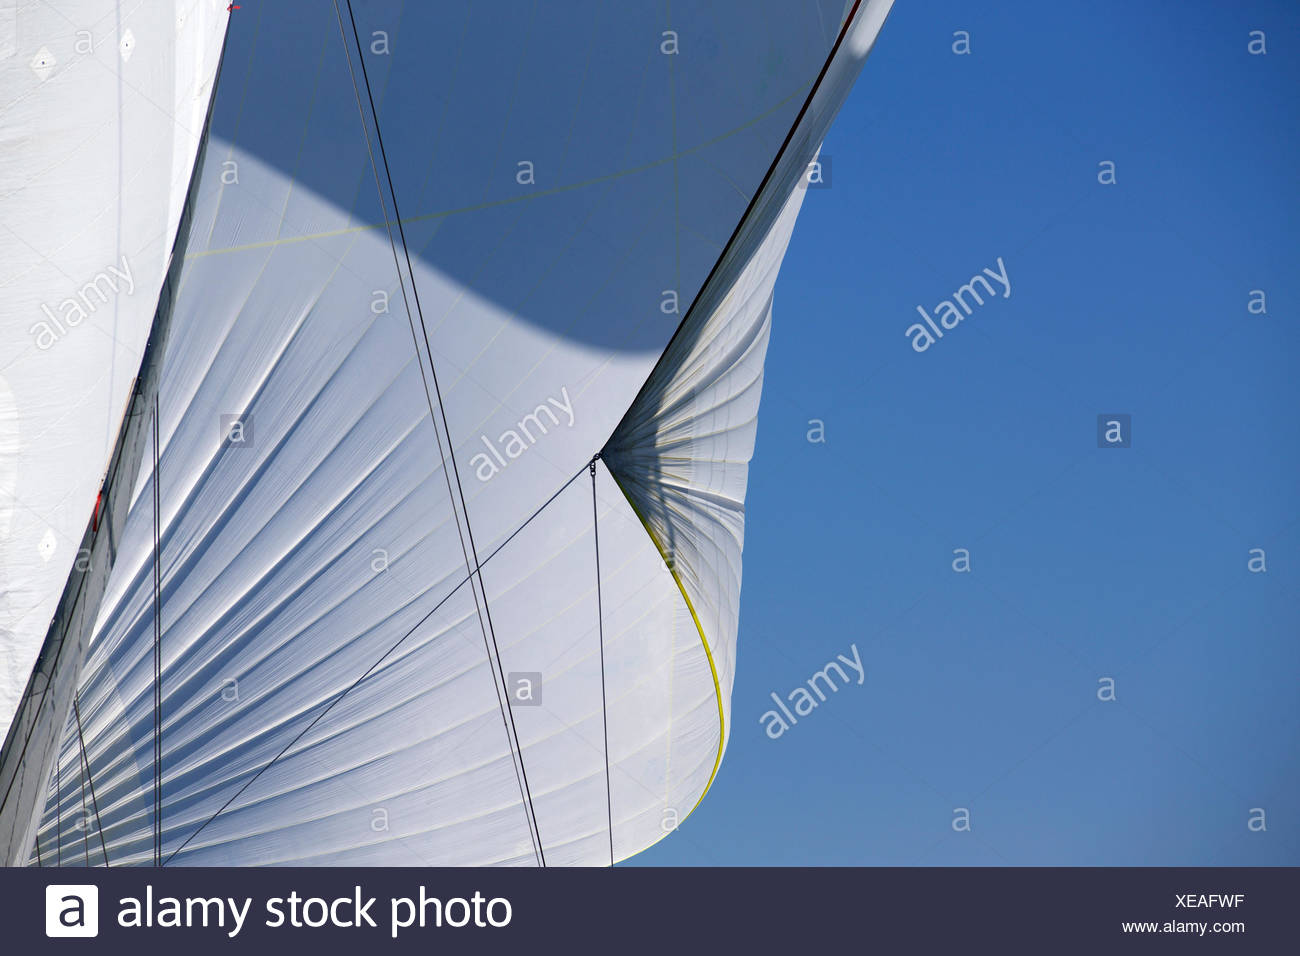 Sail detail and spinnaker of classic racing yacht - Stock Image